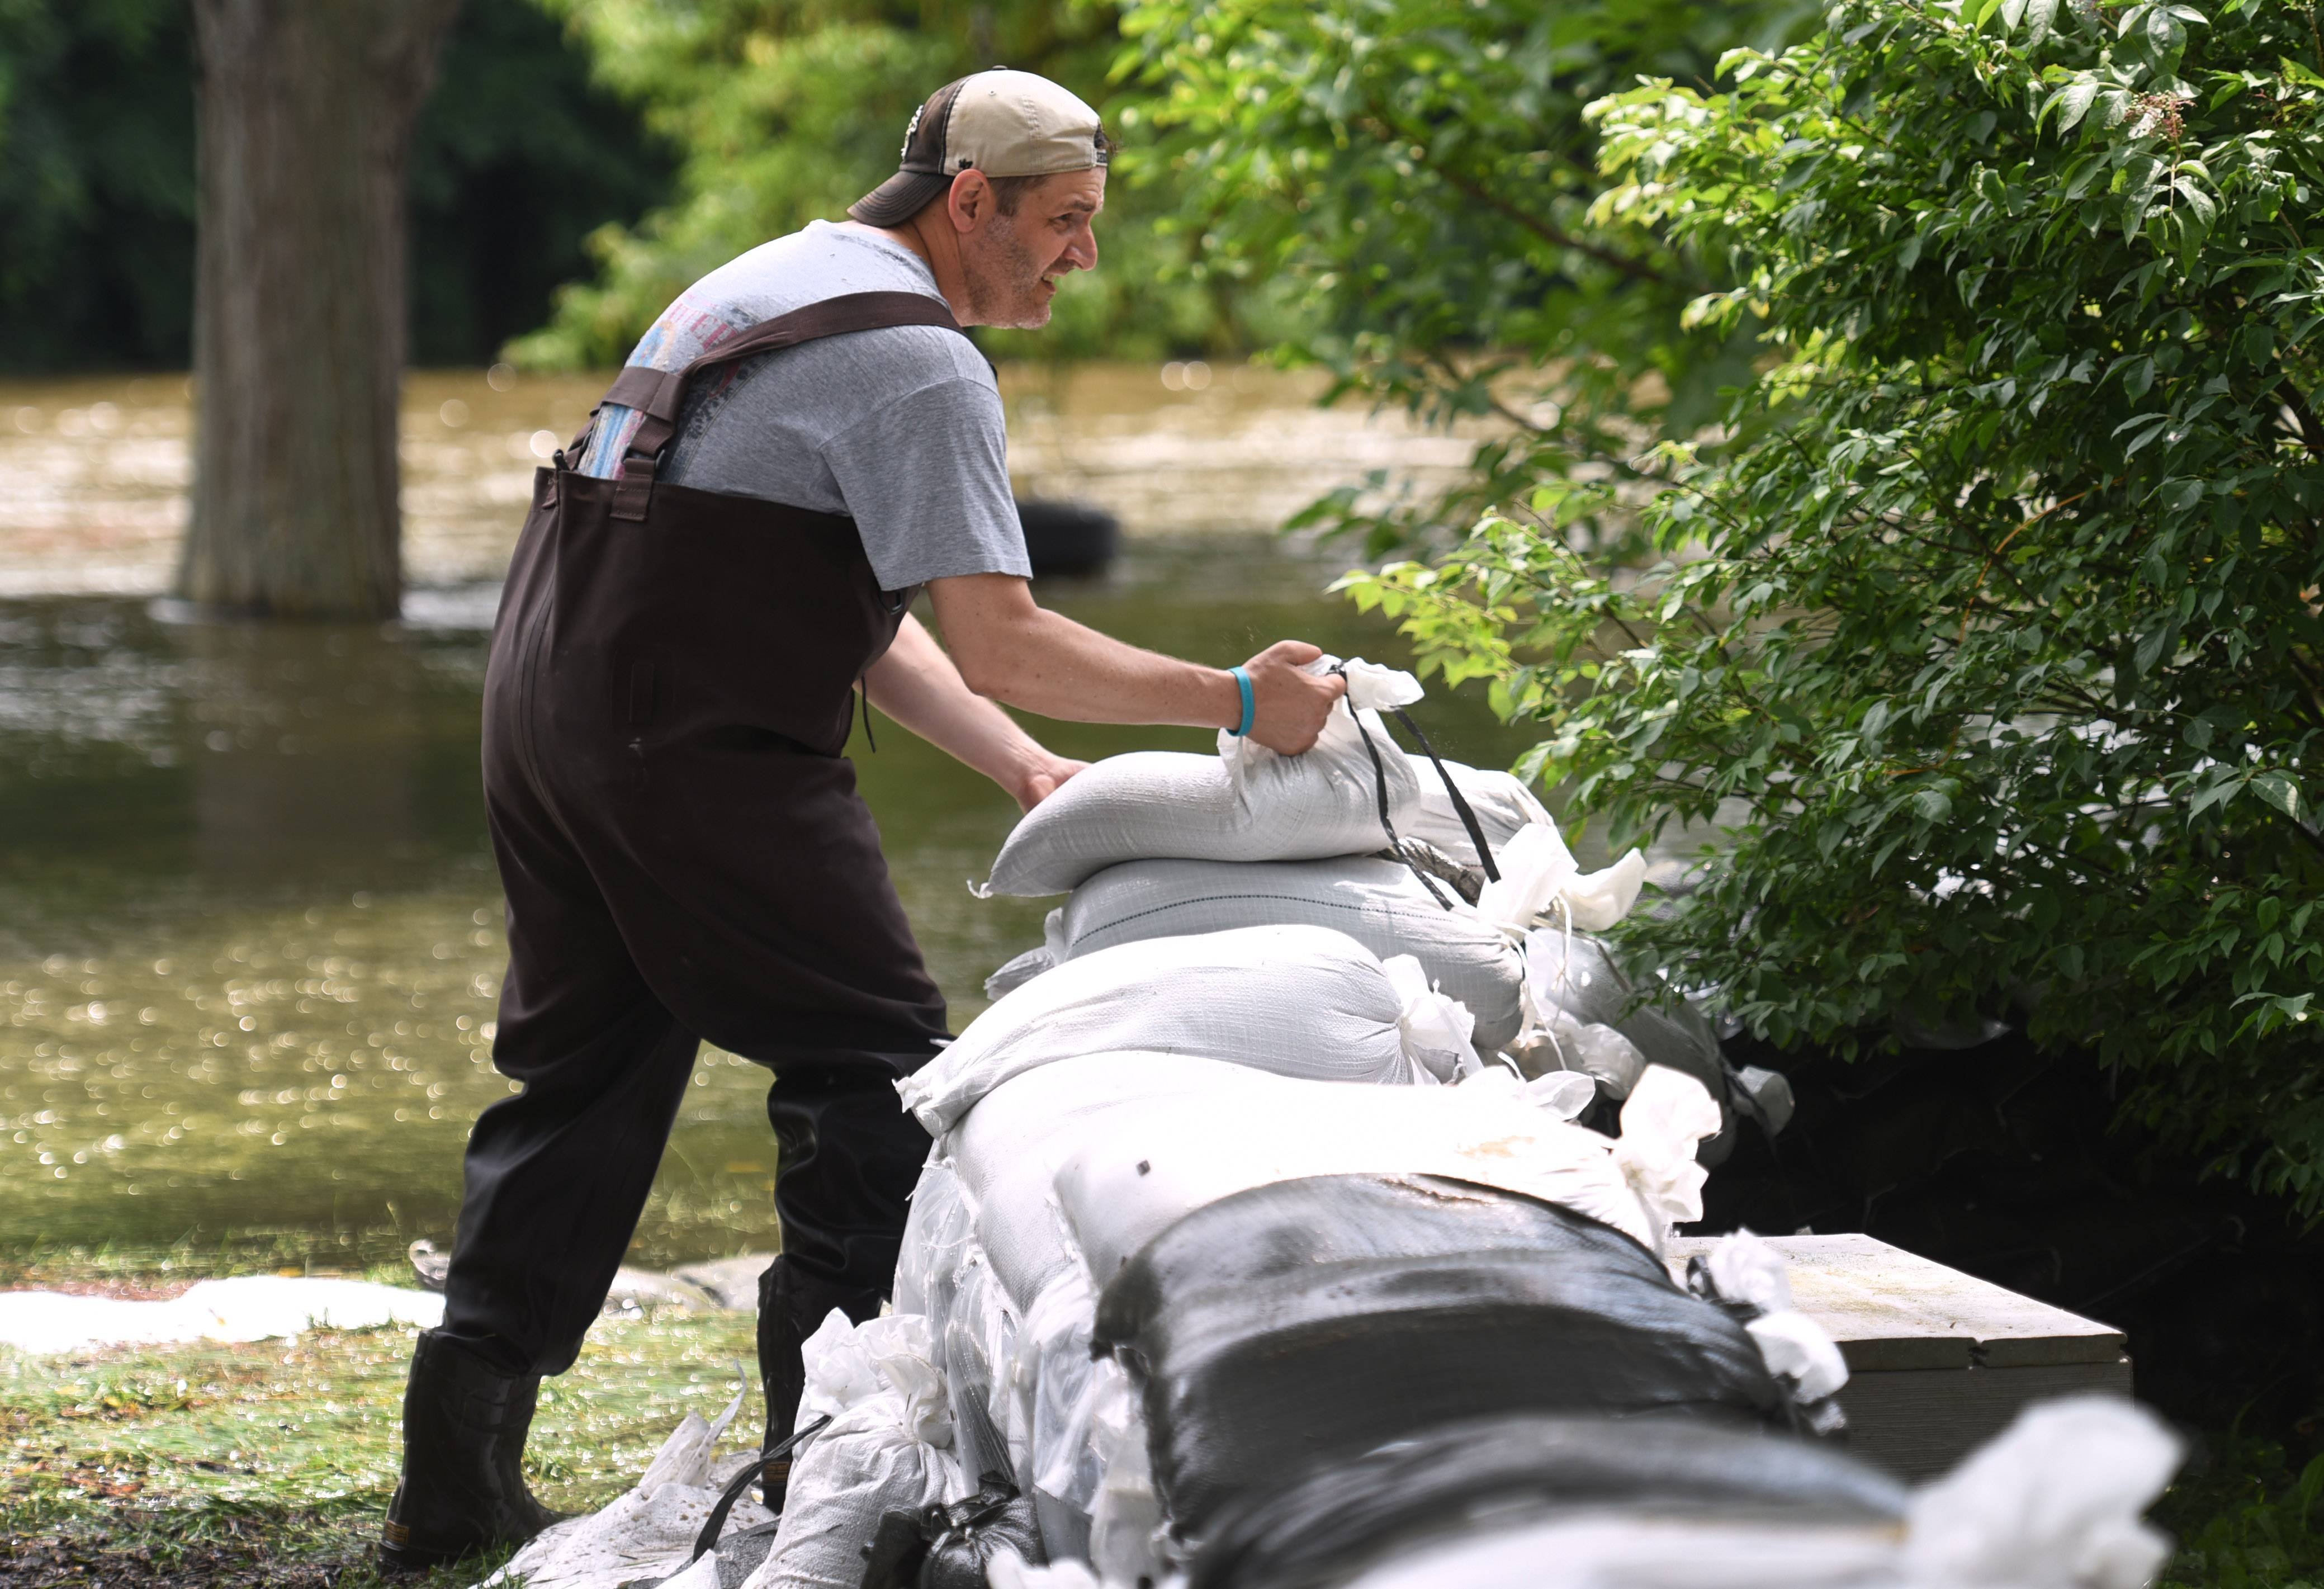 Algonquin resident Dan Prokop sandbags along the Fox River behind his La Fox River Drive home Sunday. Prokop started the sandbagging process Thursday and makes adjustments as the river rises.